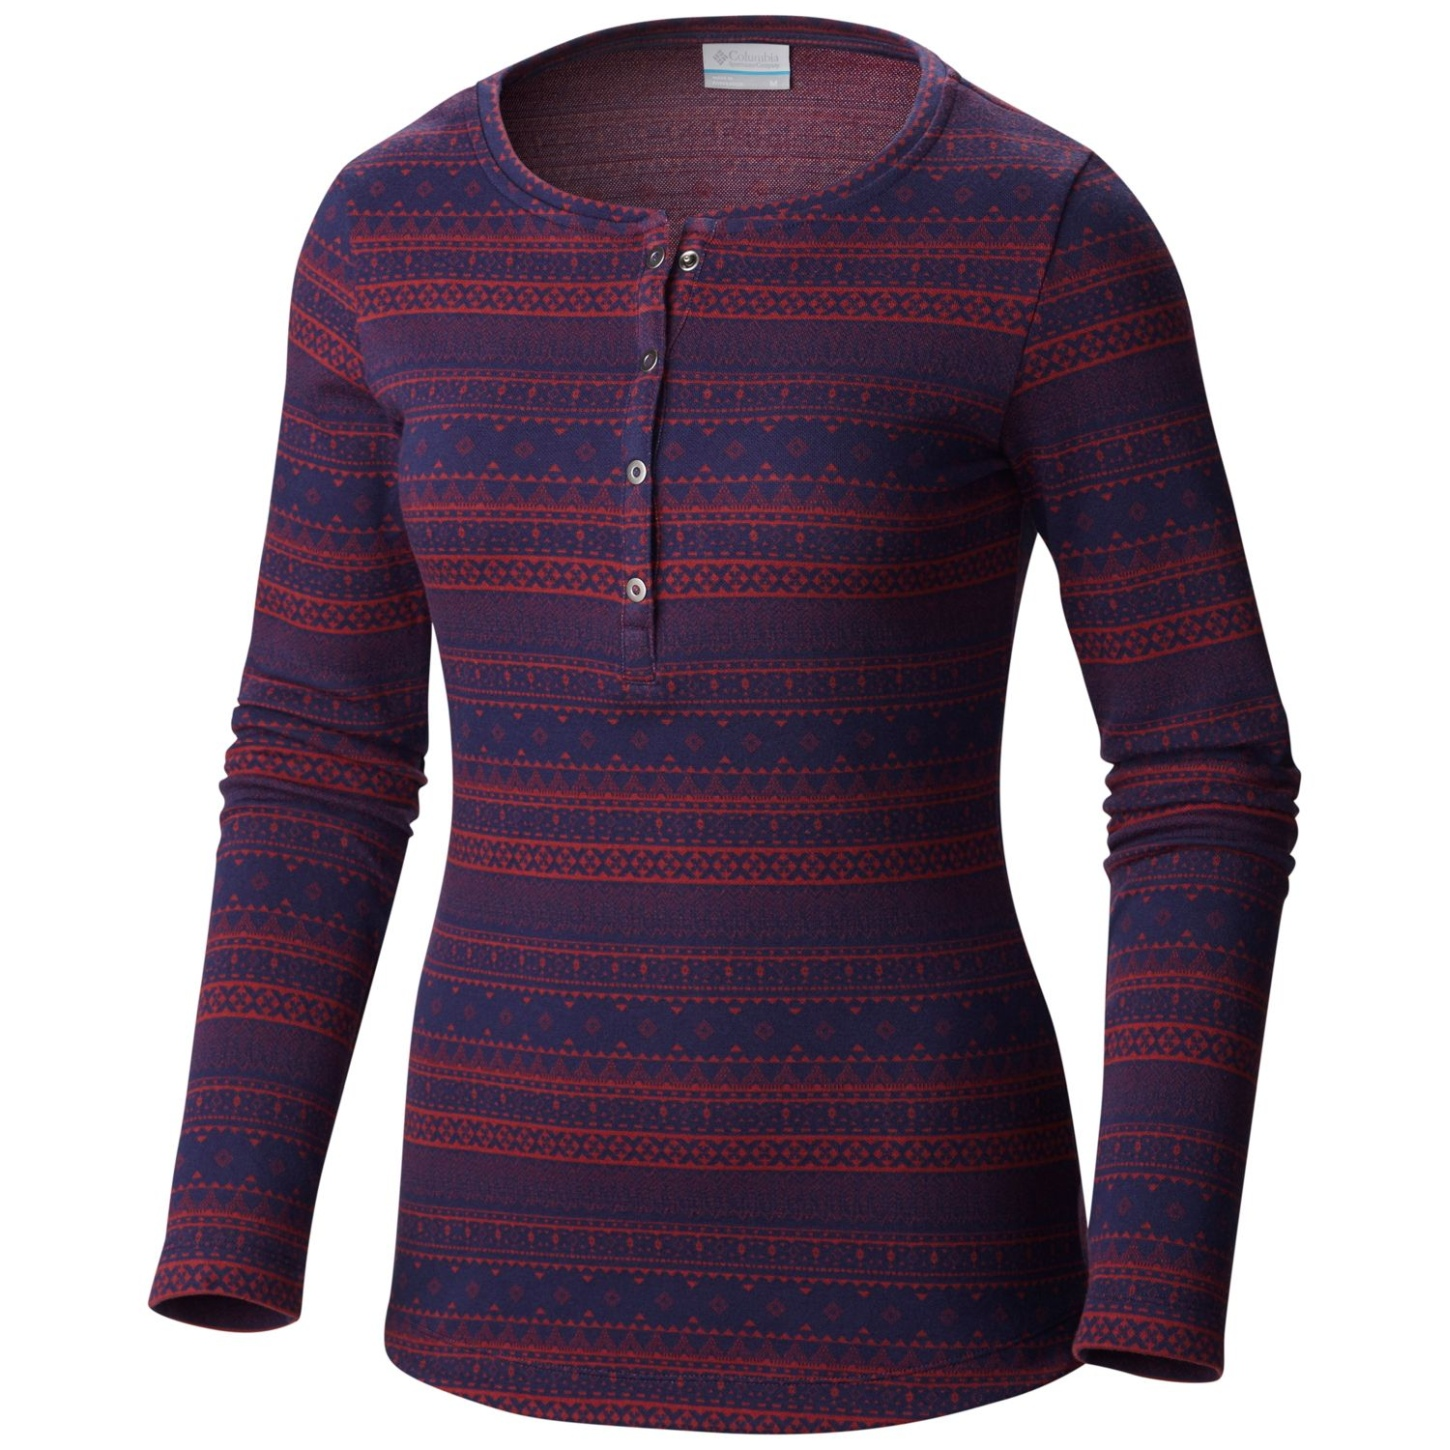 Columbia Women's Aspen Lodge Jacquard Henley Top Marsala Red Jacquard-30